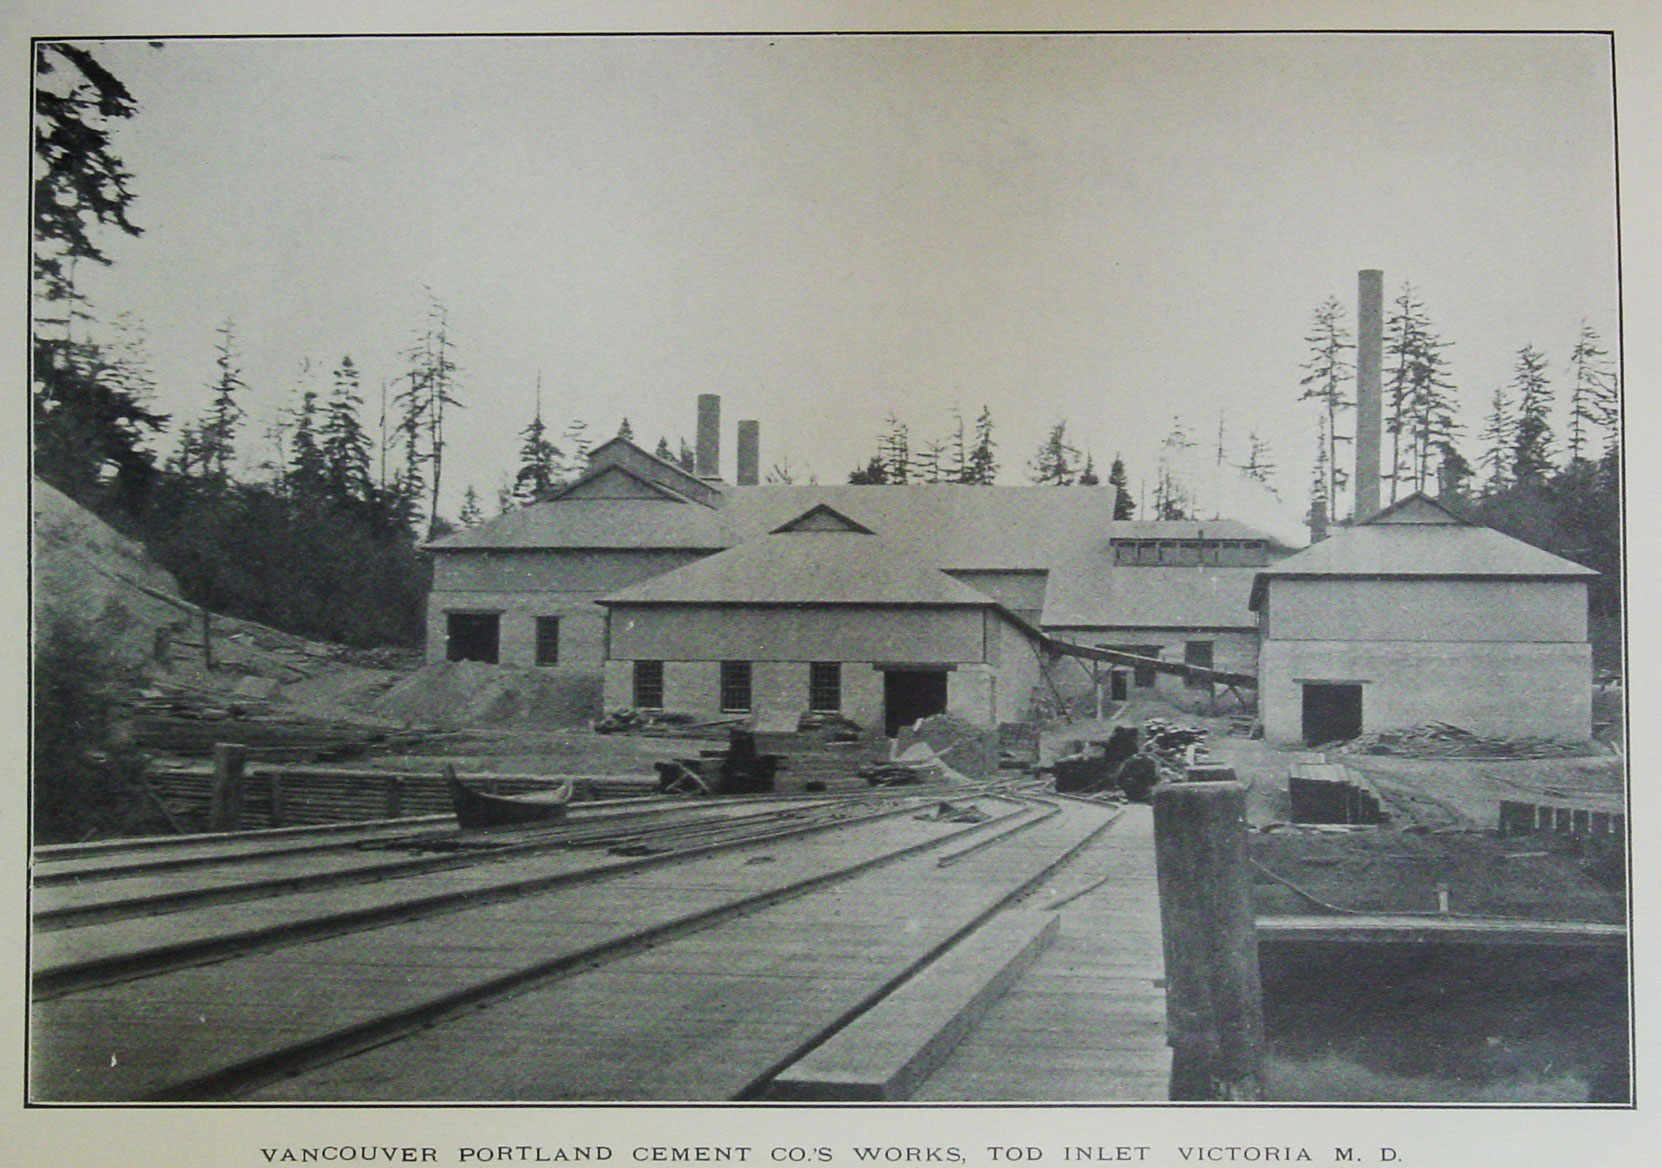 The Vancouver Portland Cement Company dock and plant at Tod Inlet, 1904. This photo appeared in the B.C. Minister of Mines Annual Report, 1904. (Author's collection)